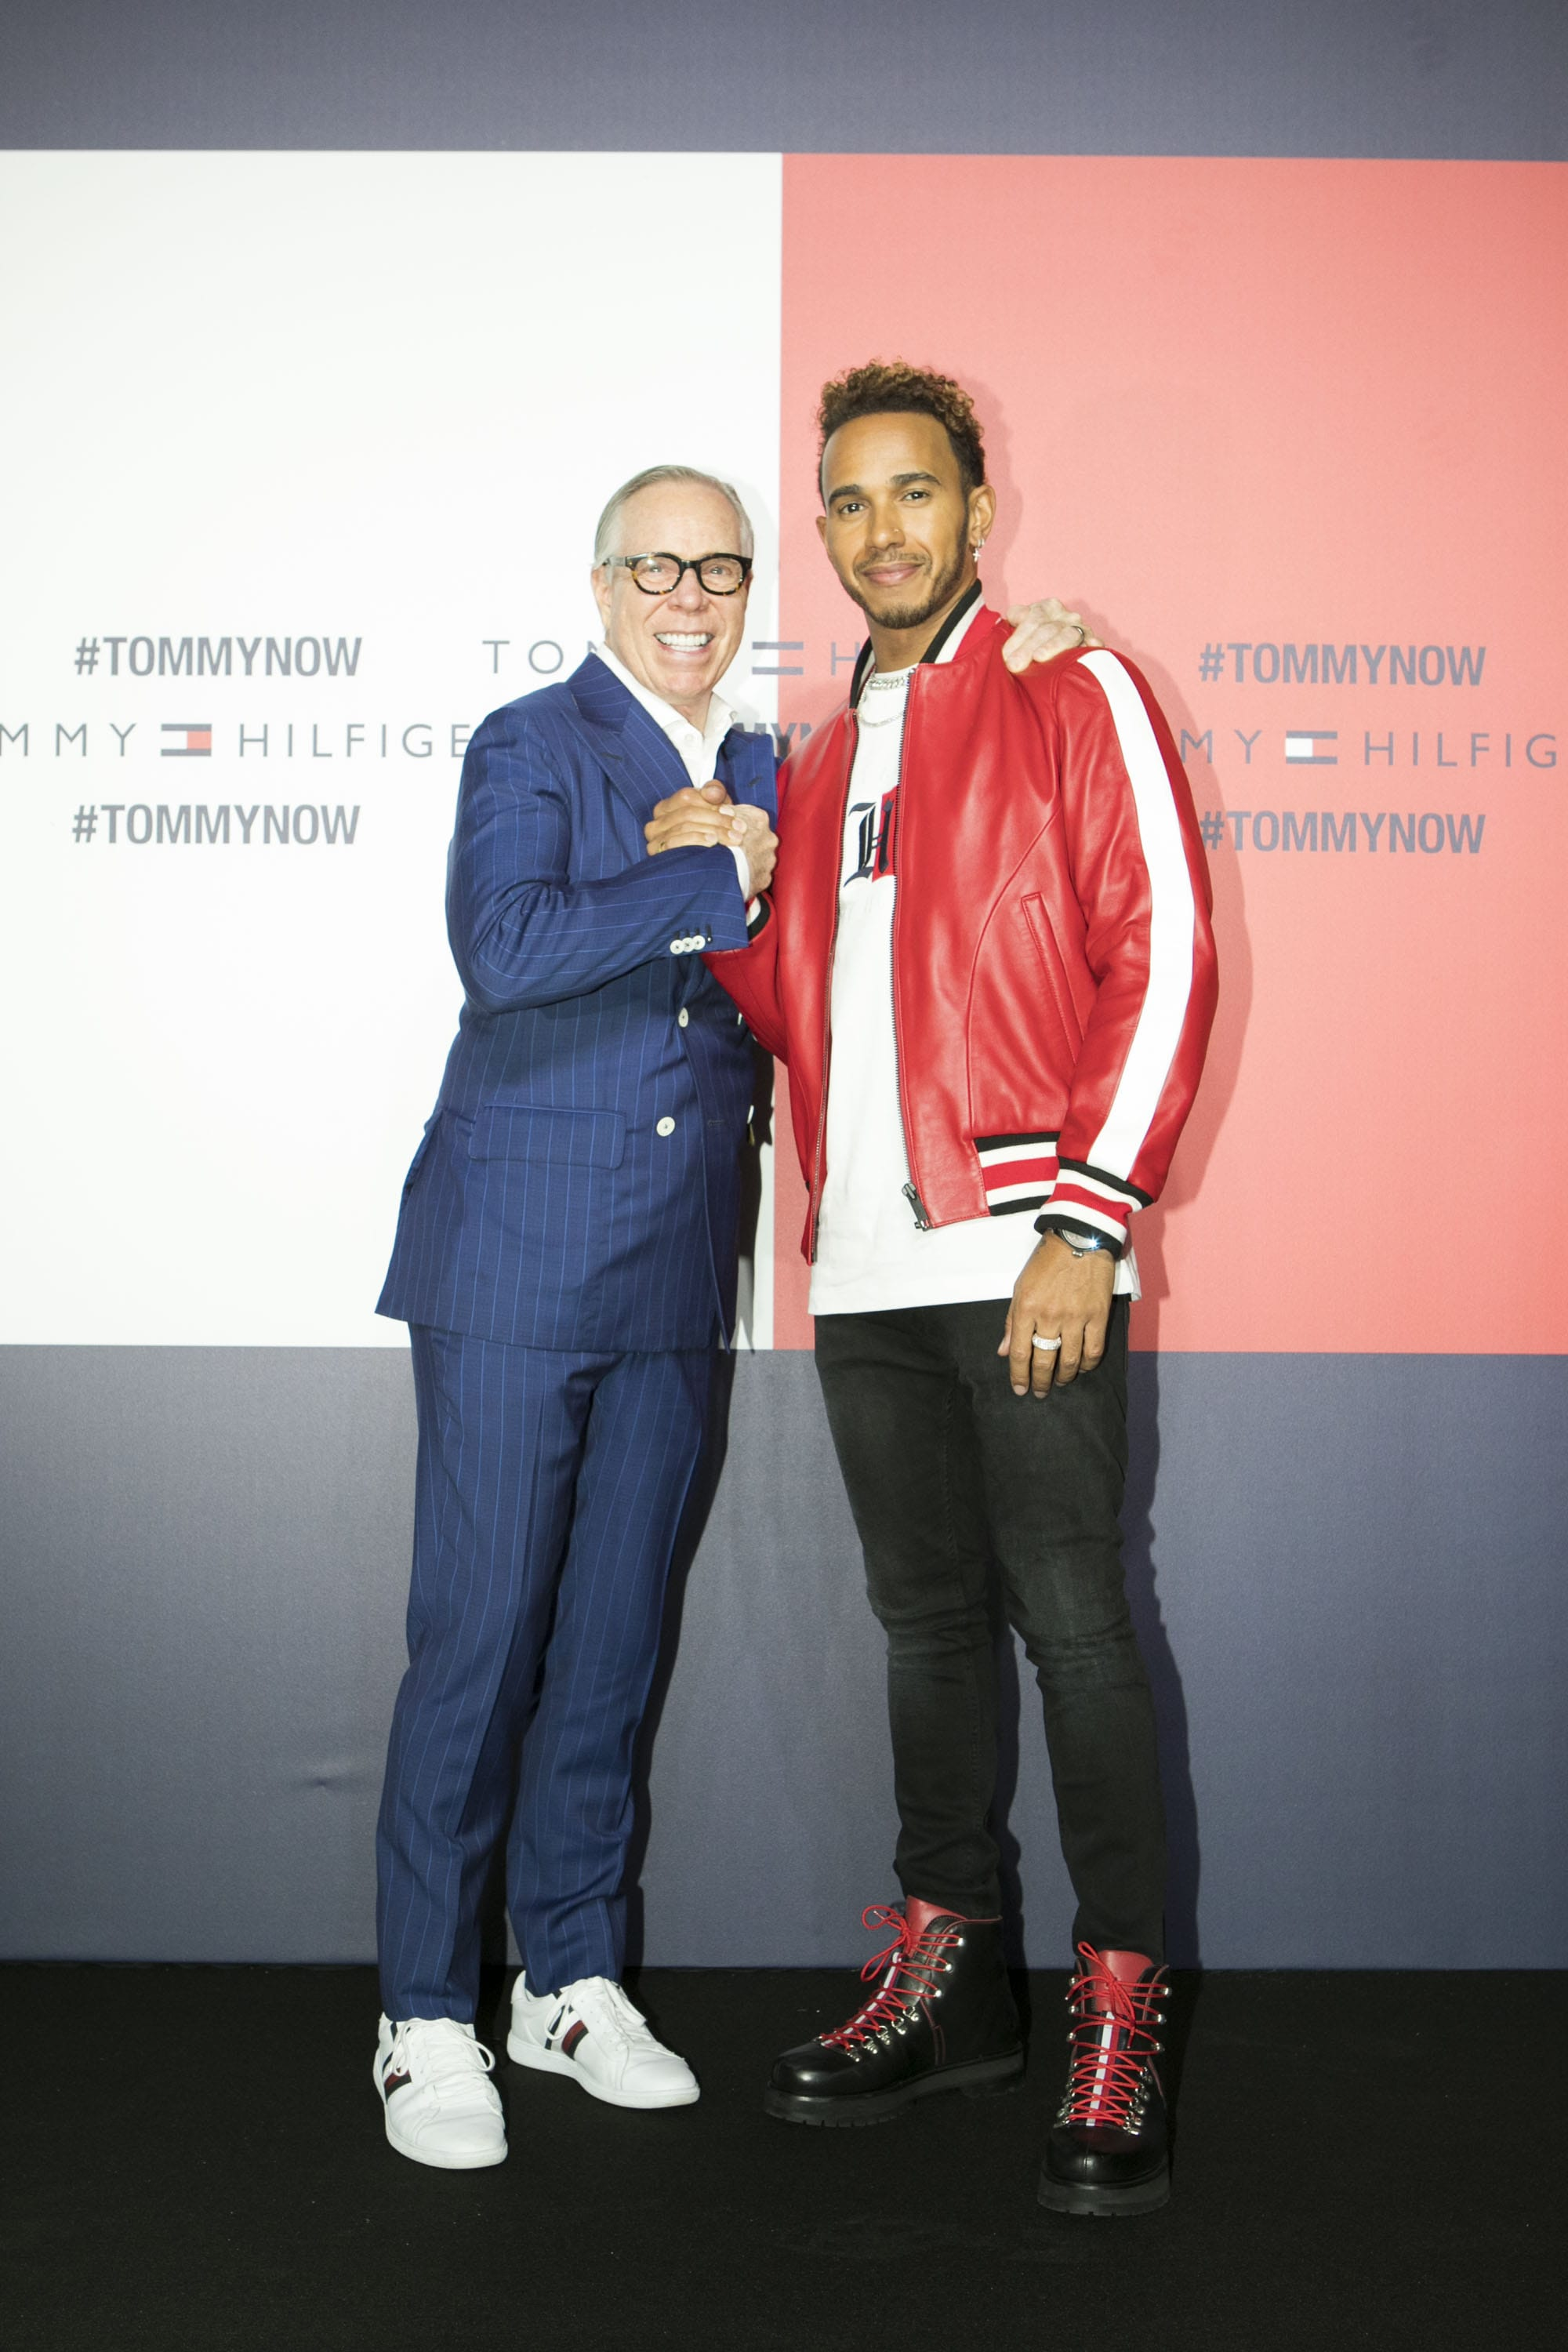 tommy hilfiger and lewis hamilton low res 3